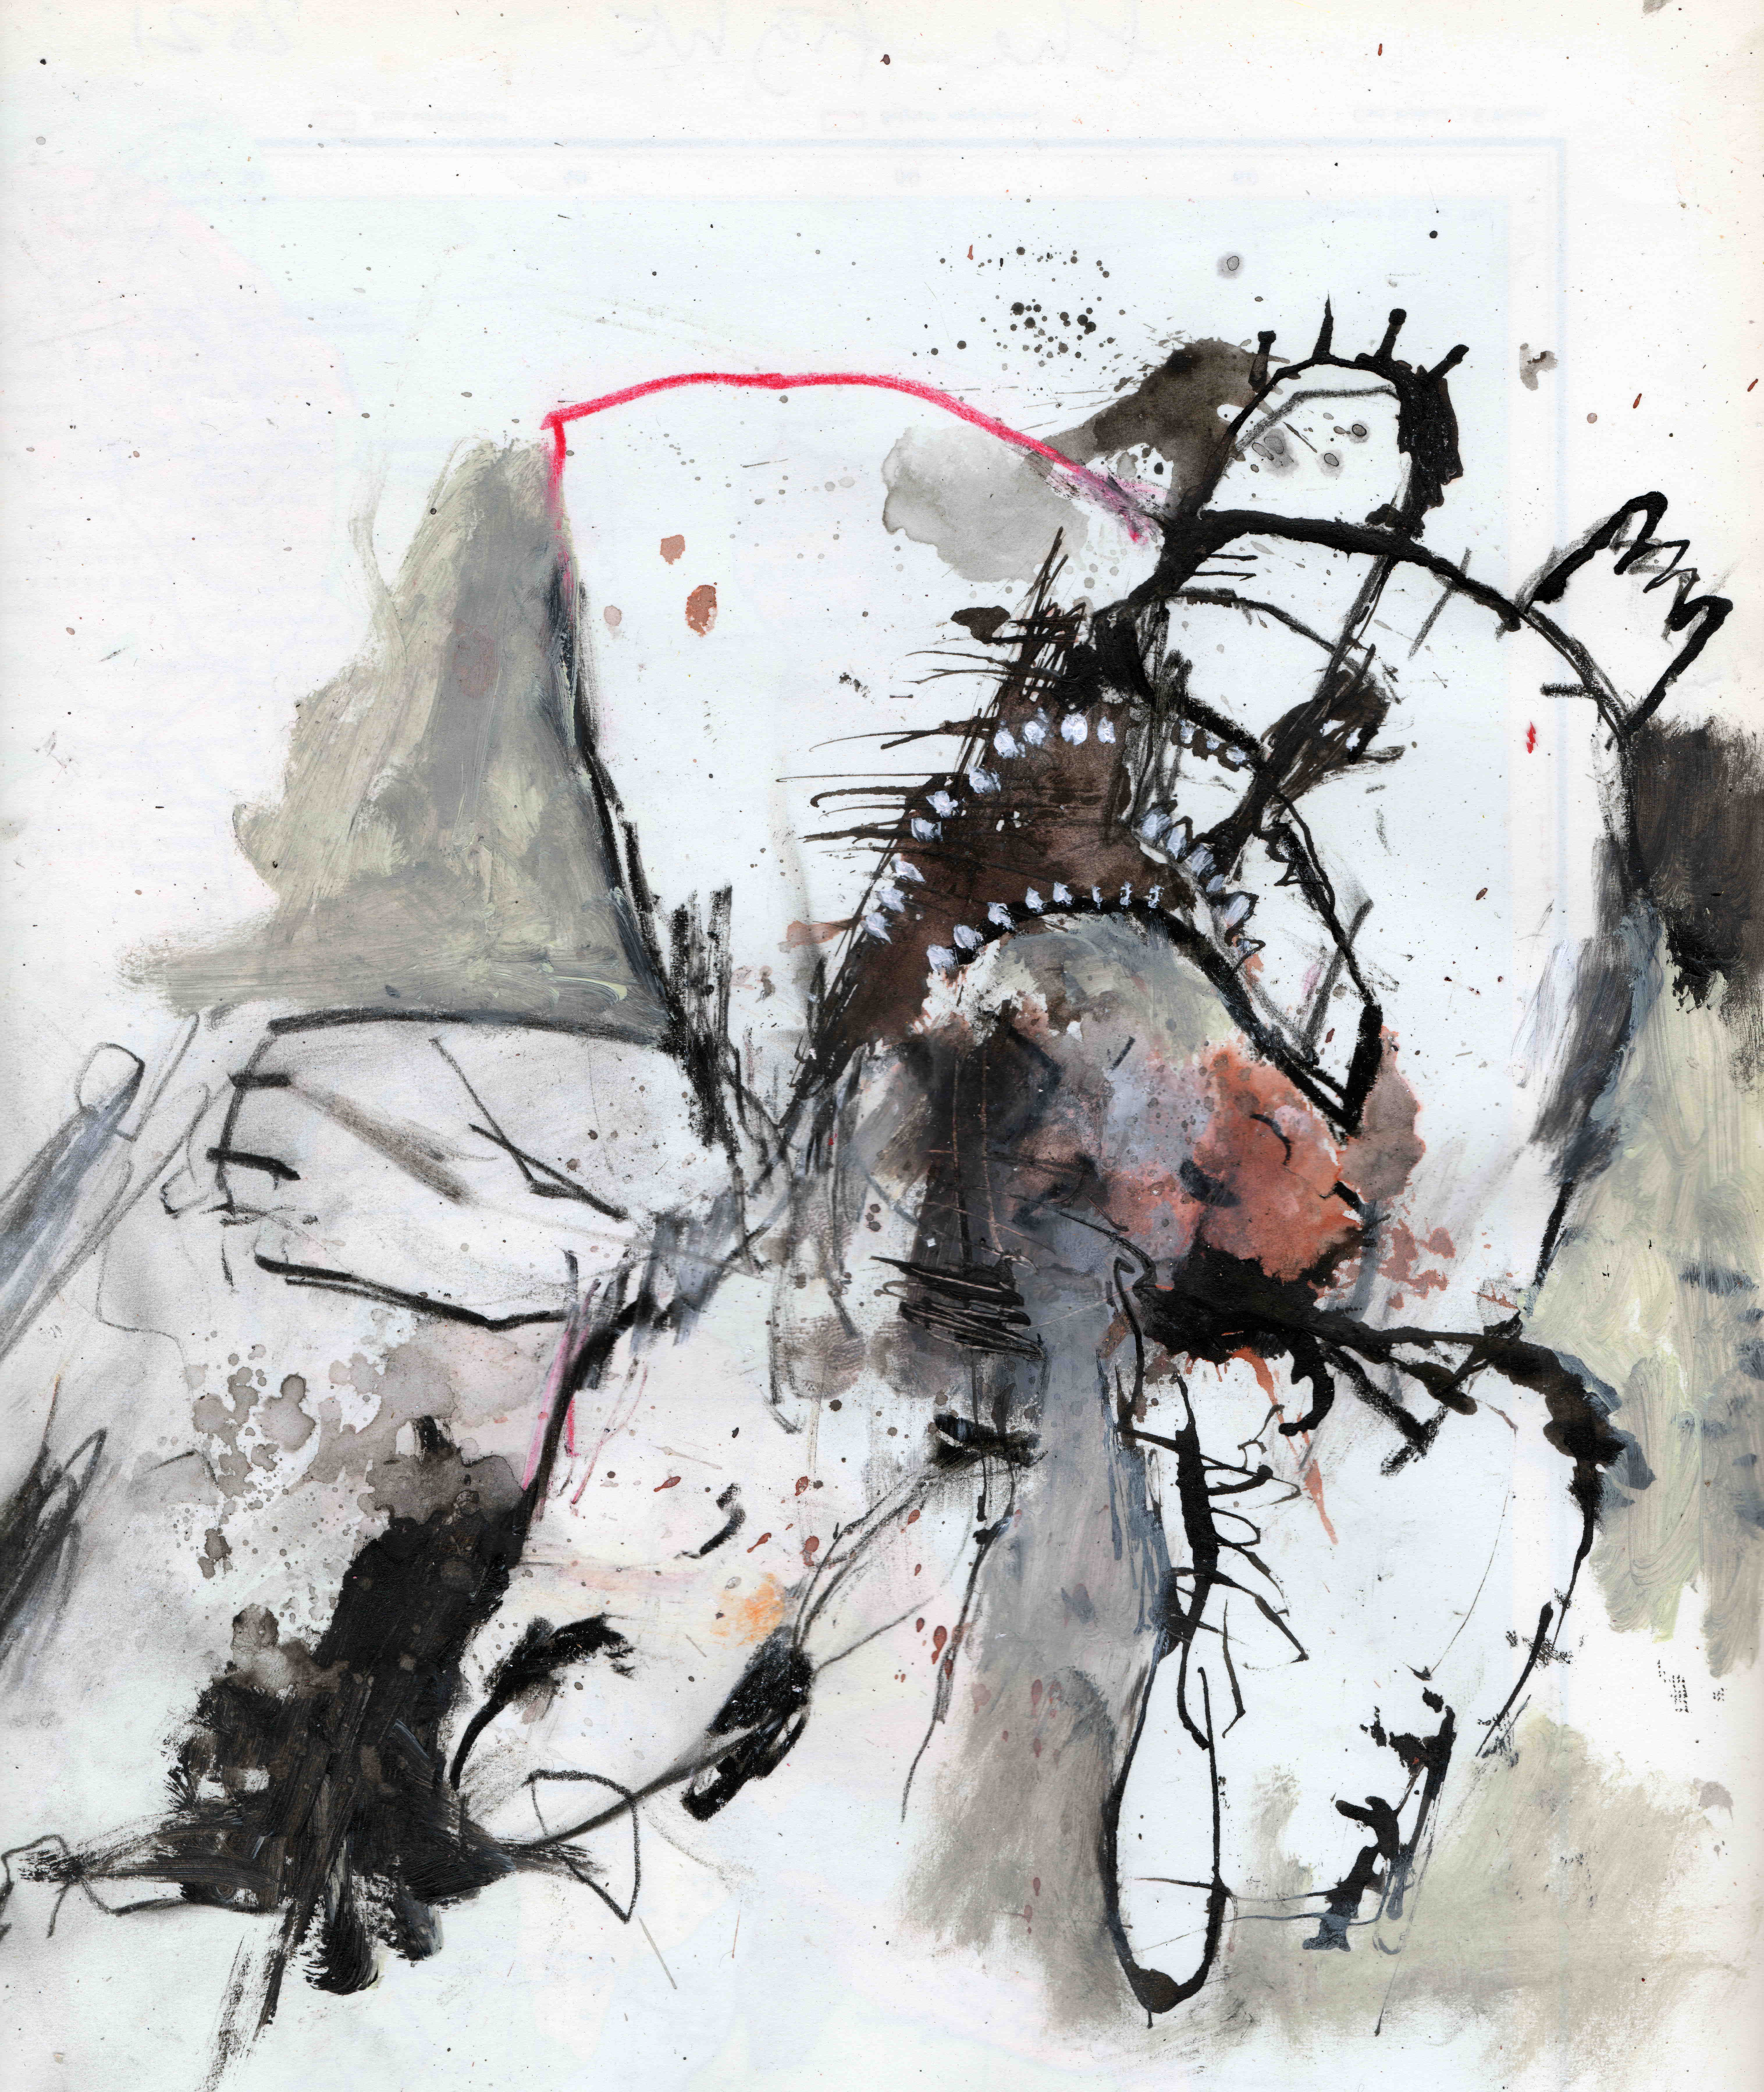 The fight, mixed media on paper, 22,5 x 26 cm, 2021 MHFeb1